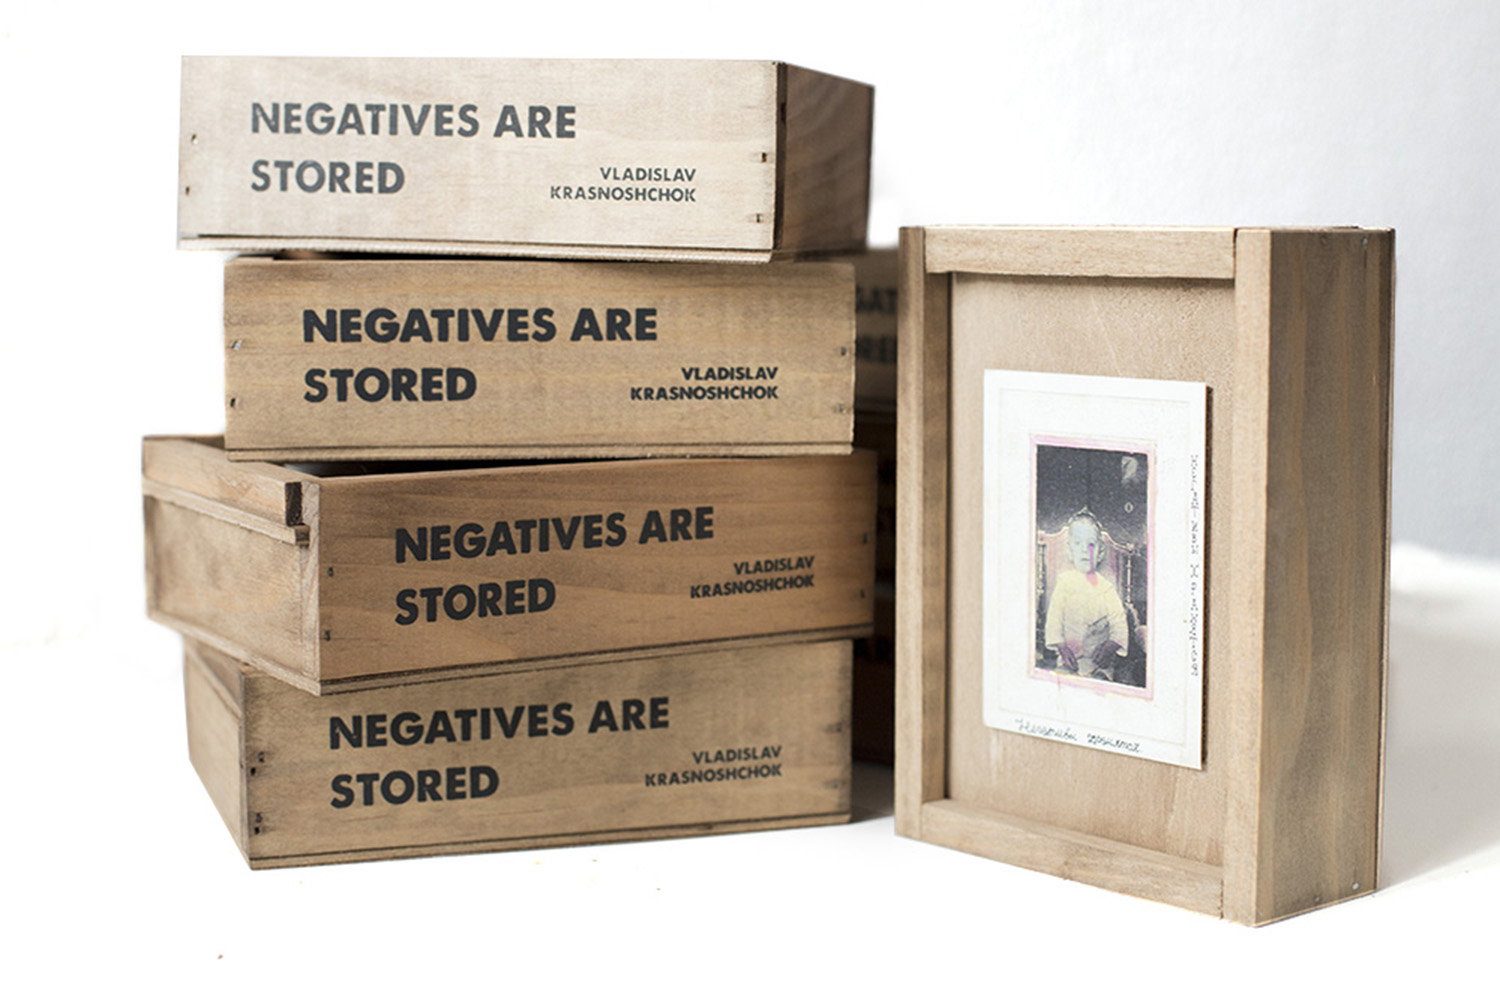 For Vladyslav Krasnoshchok's book Negatives Are Stored, the self-publishing company Riot Books created wooden boxes to store the images.